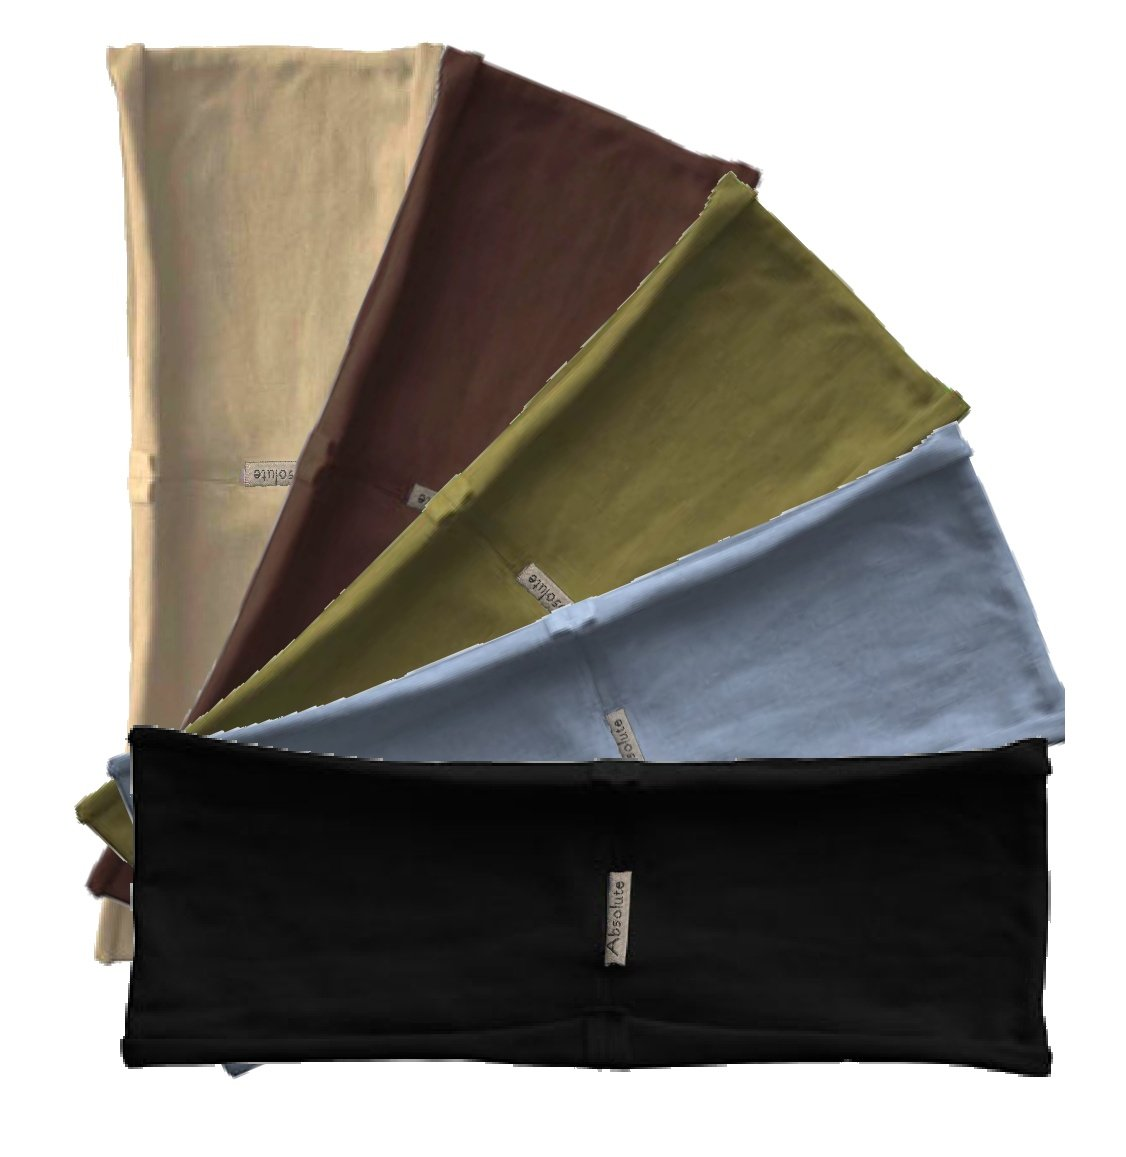 5-pack hBAND Earth stretchy yoga headbands (black, olive, gray, beige, brown) by Absolute Yogi